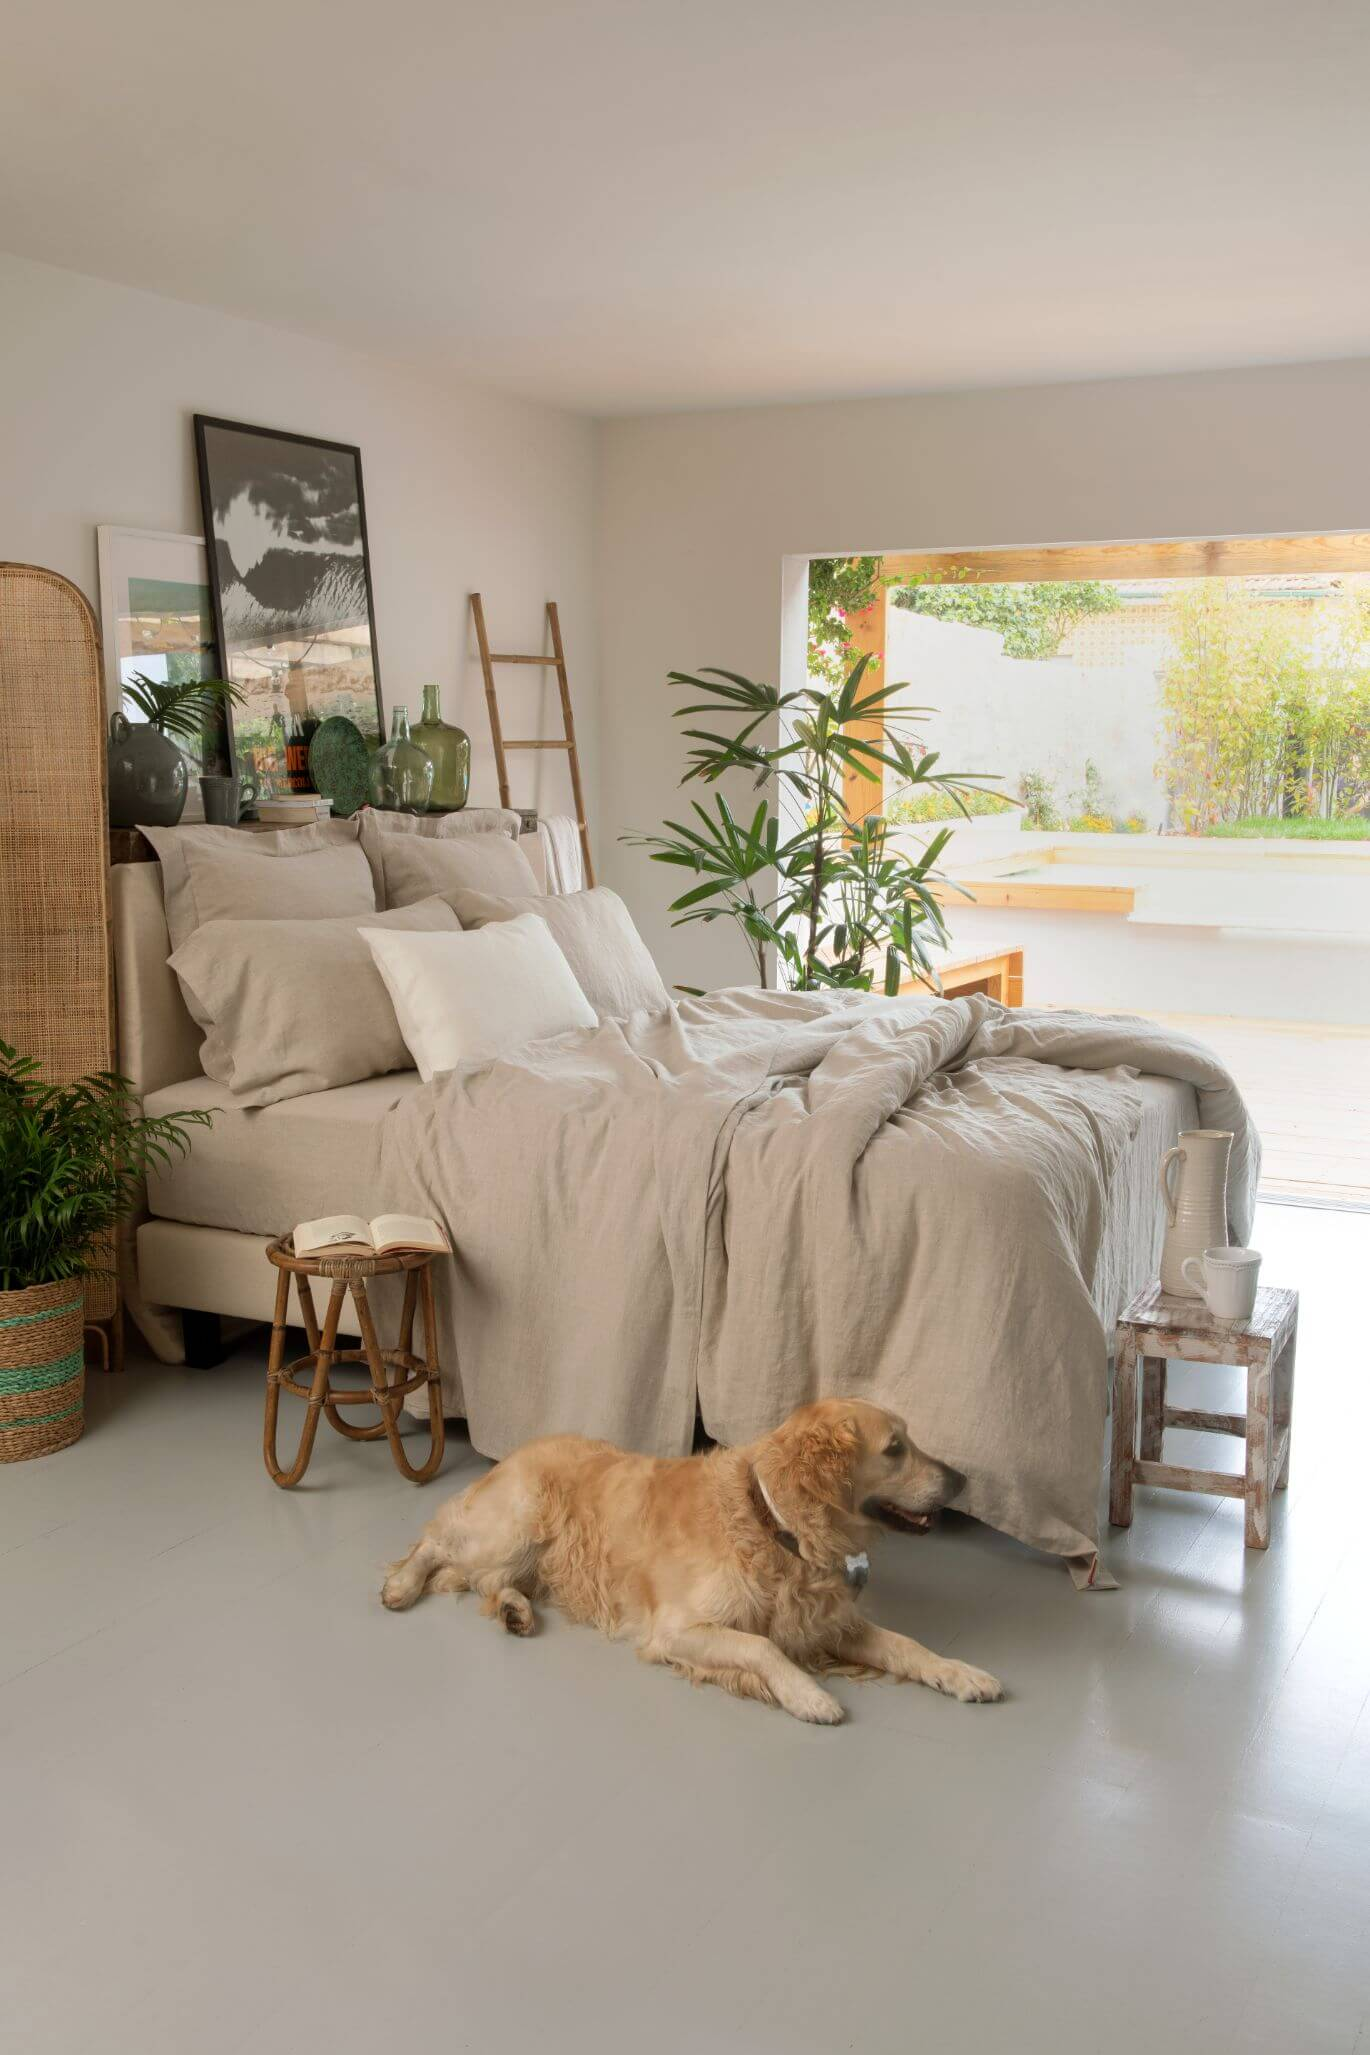 Sustainable bedroom with green accents and Marialma's hemp bed sheets